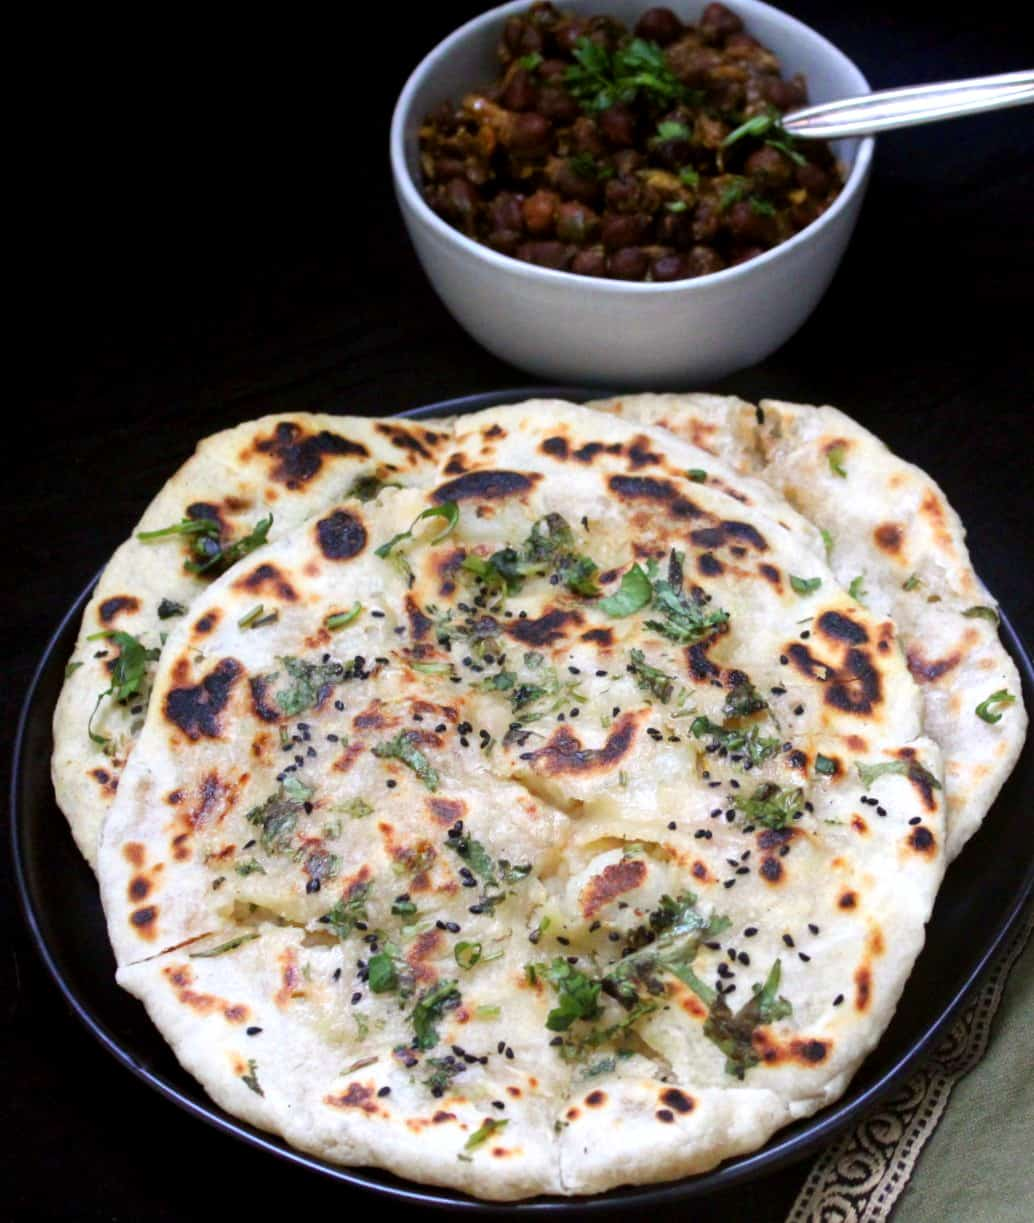 Photo of Aloo Kulcha piled on a plate with chana masala in a bowl